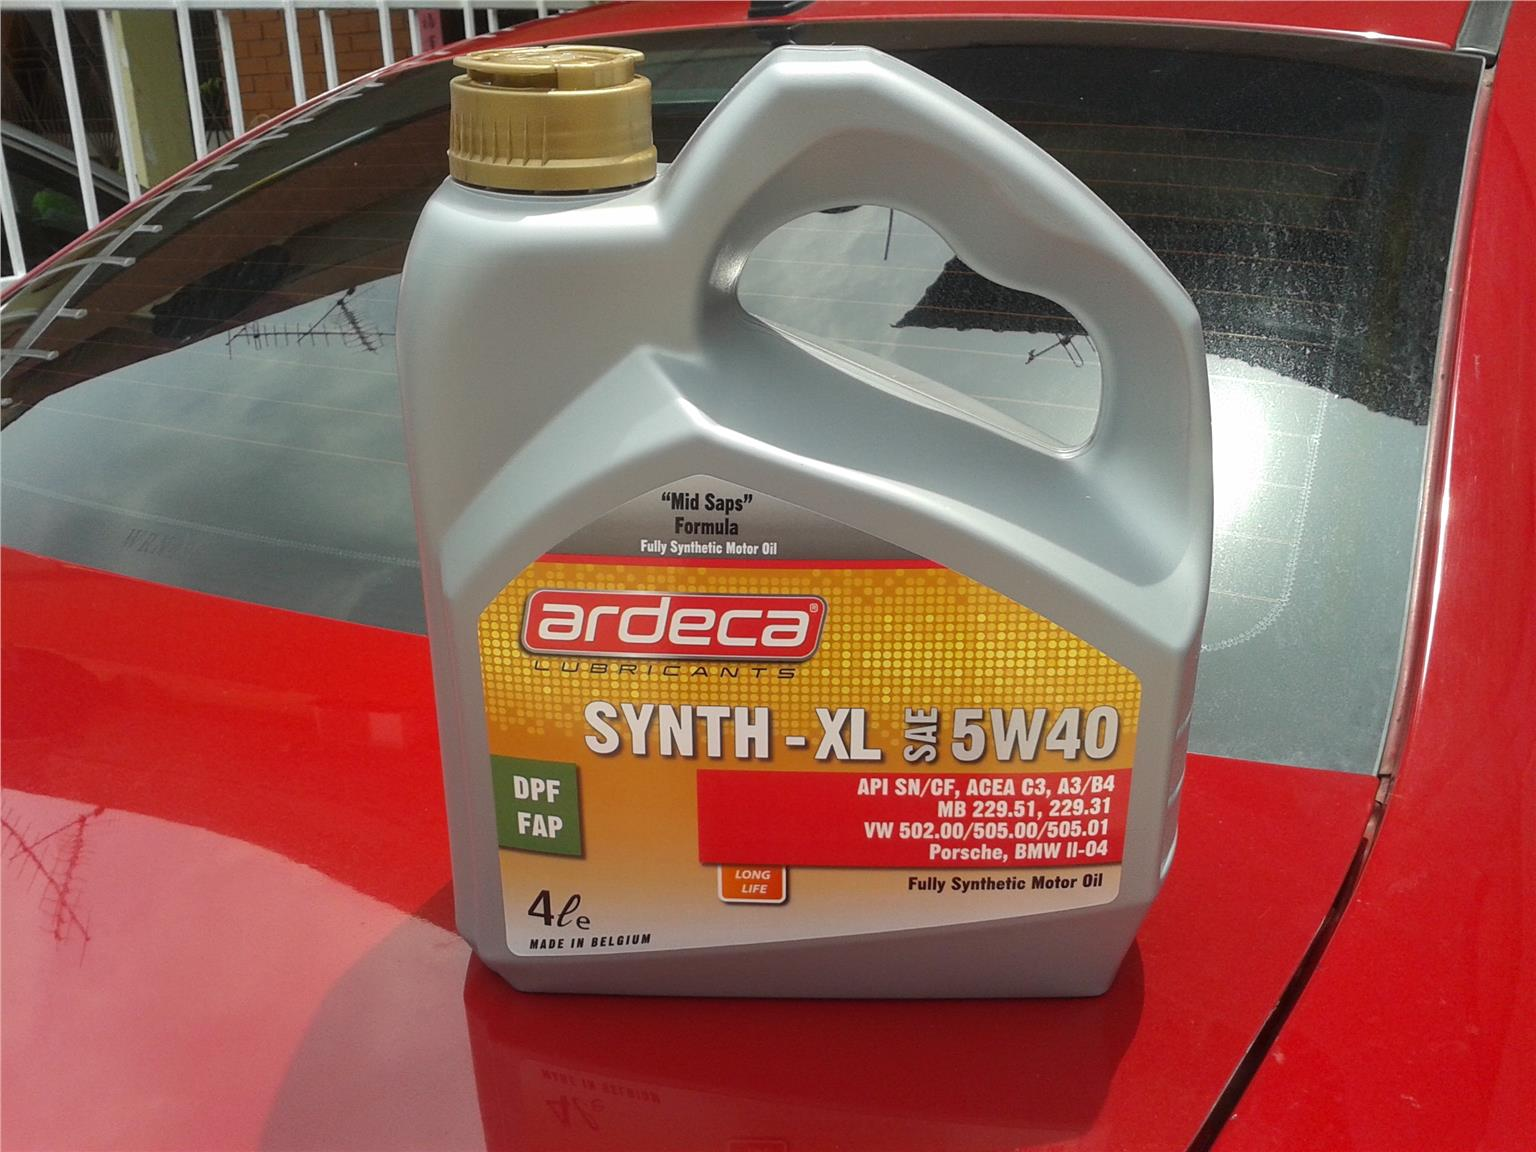 ARDECA HIGH PERFORMANCE FULLY SYNTHETIC SYNTH - XL 5W40 ENGINE OIL.